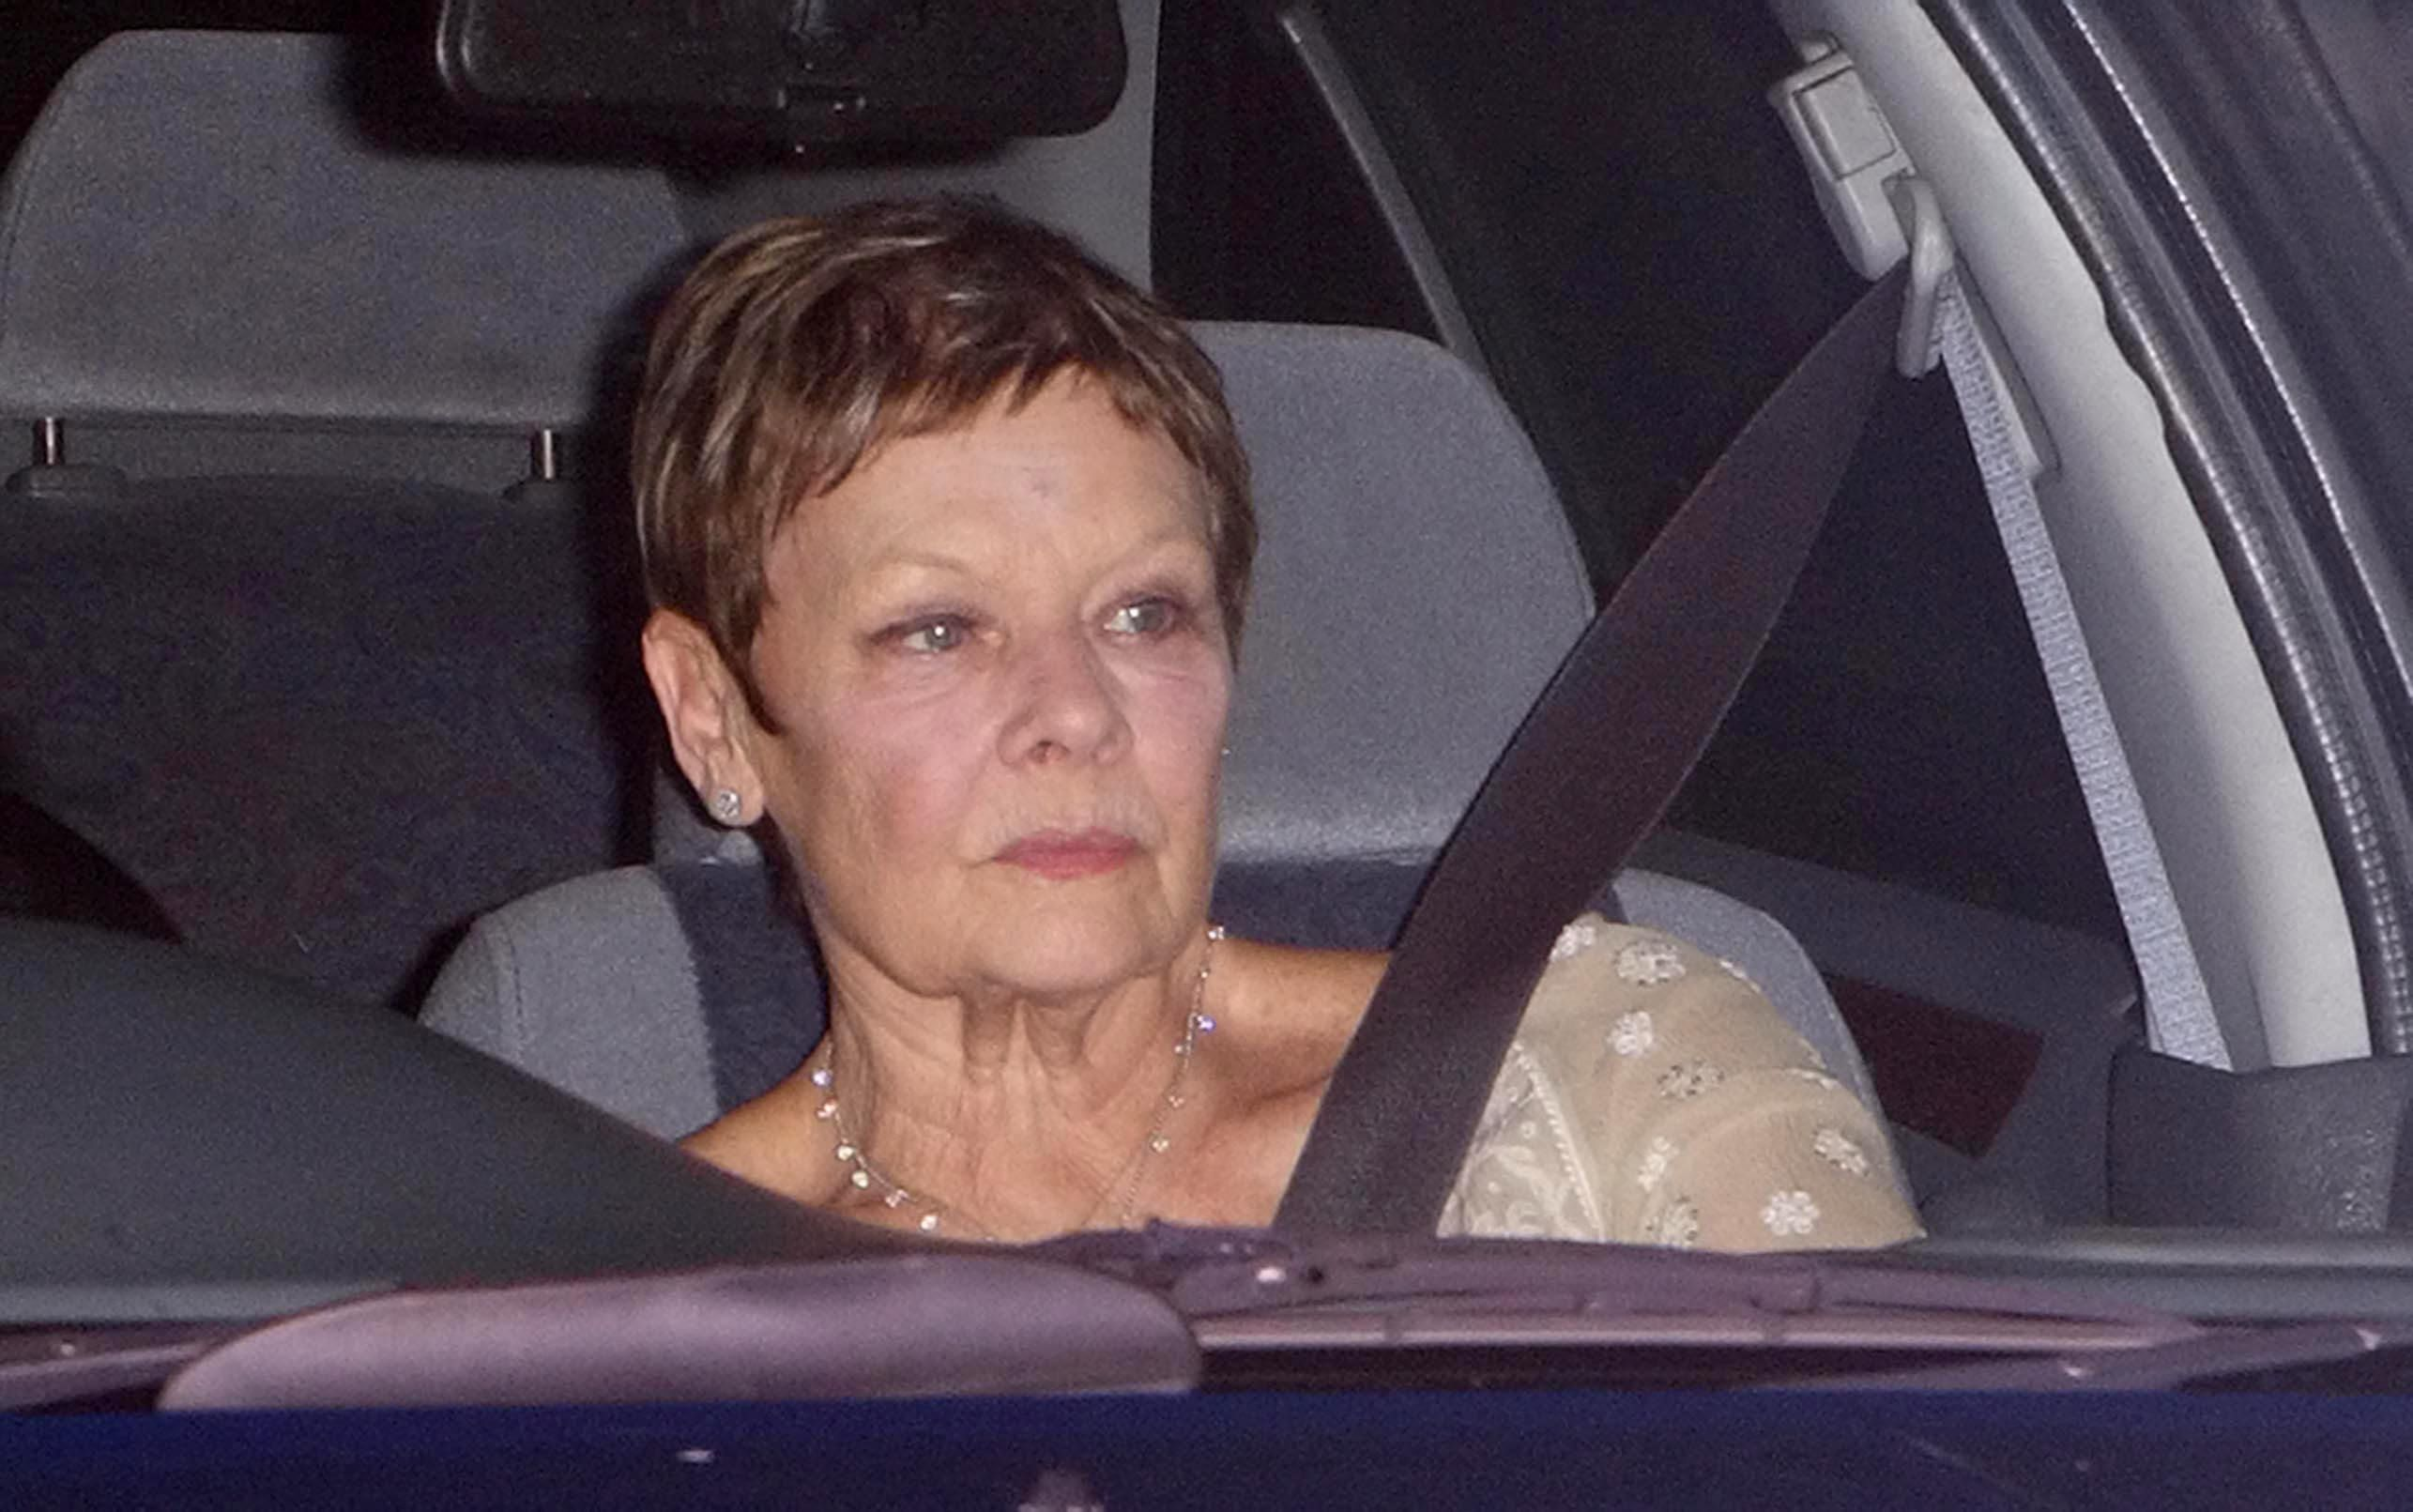 Dame Judi Dench arrives at the party.